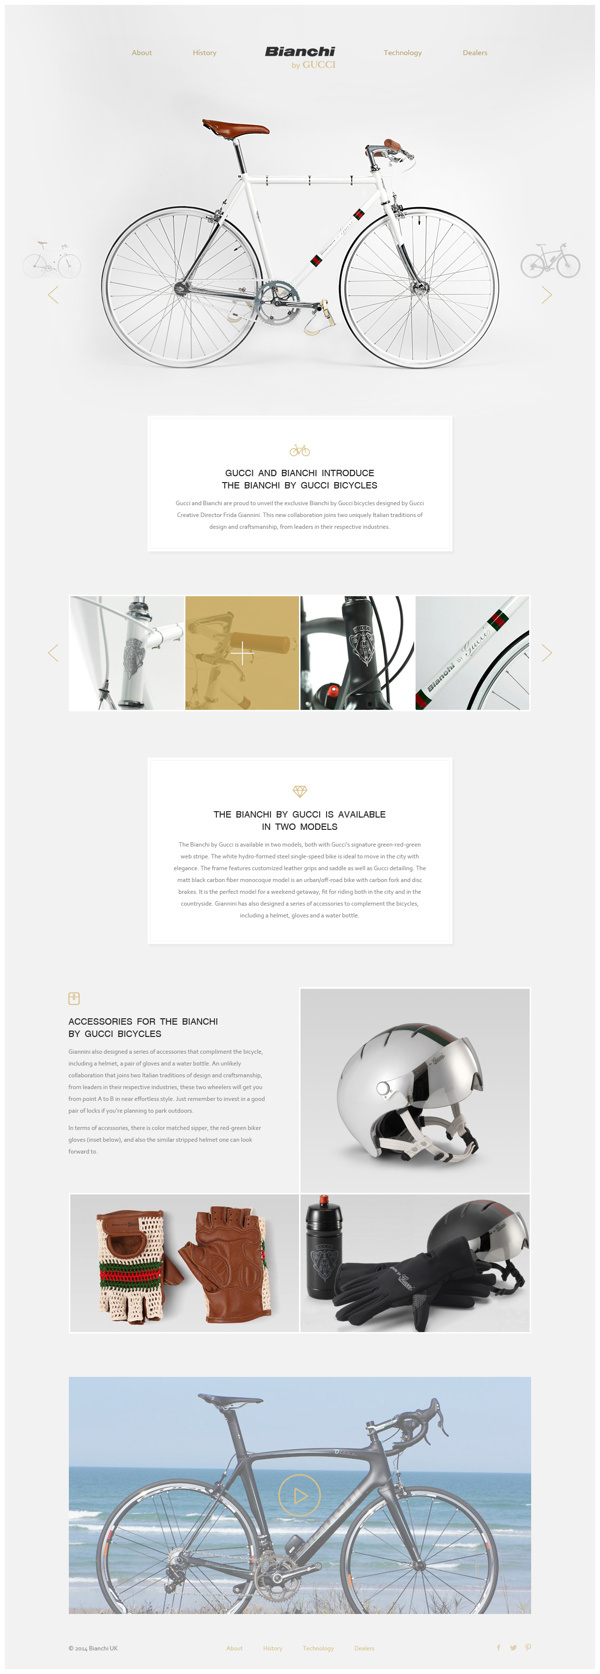 THE BIANCHI BY GUCCI BICYCLES by Max Lapteff #clear #site #ux #design #interface #ui #minimal #webdesign #art #web